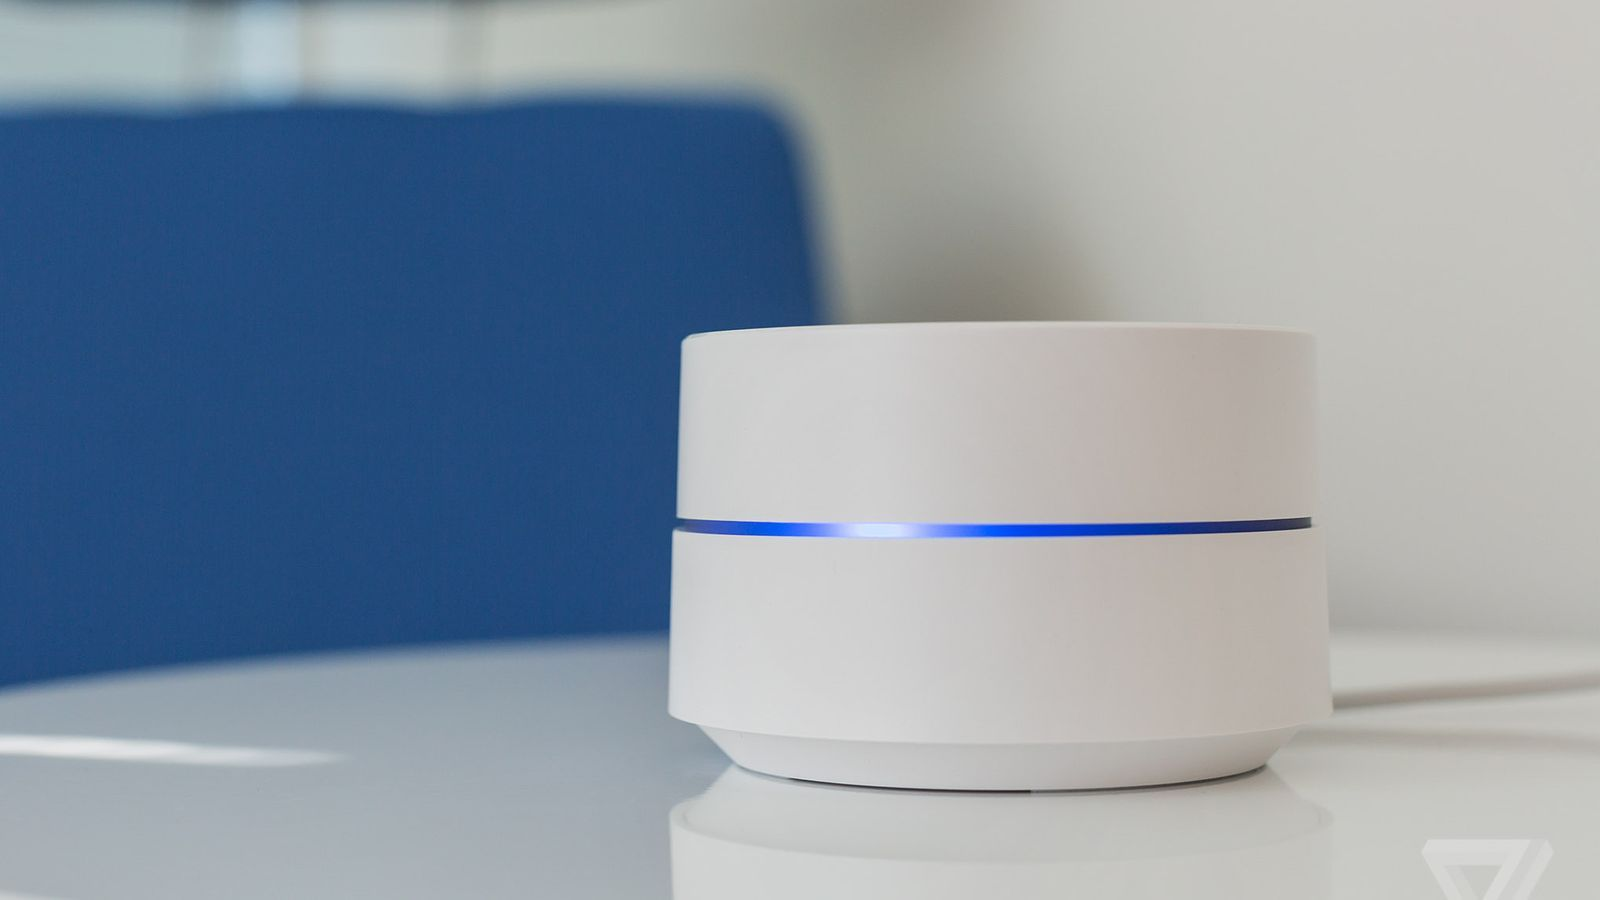 The Google Wifi routers are little white pucks you can scatter ...